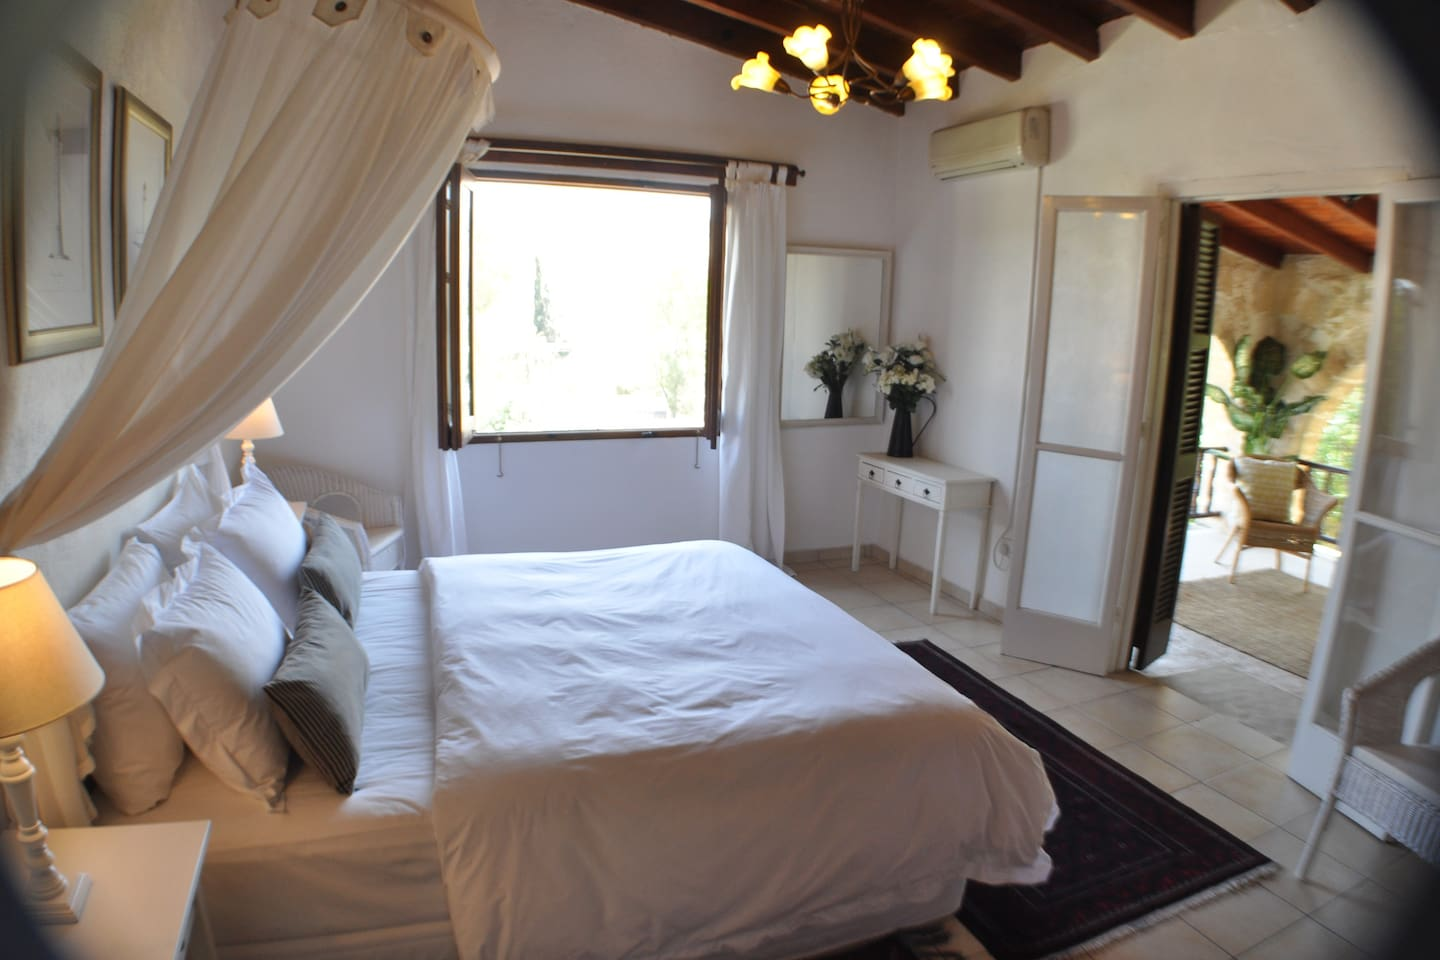 Double en suite rooms with king-size beds and delightful views.